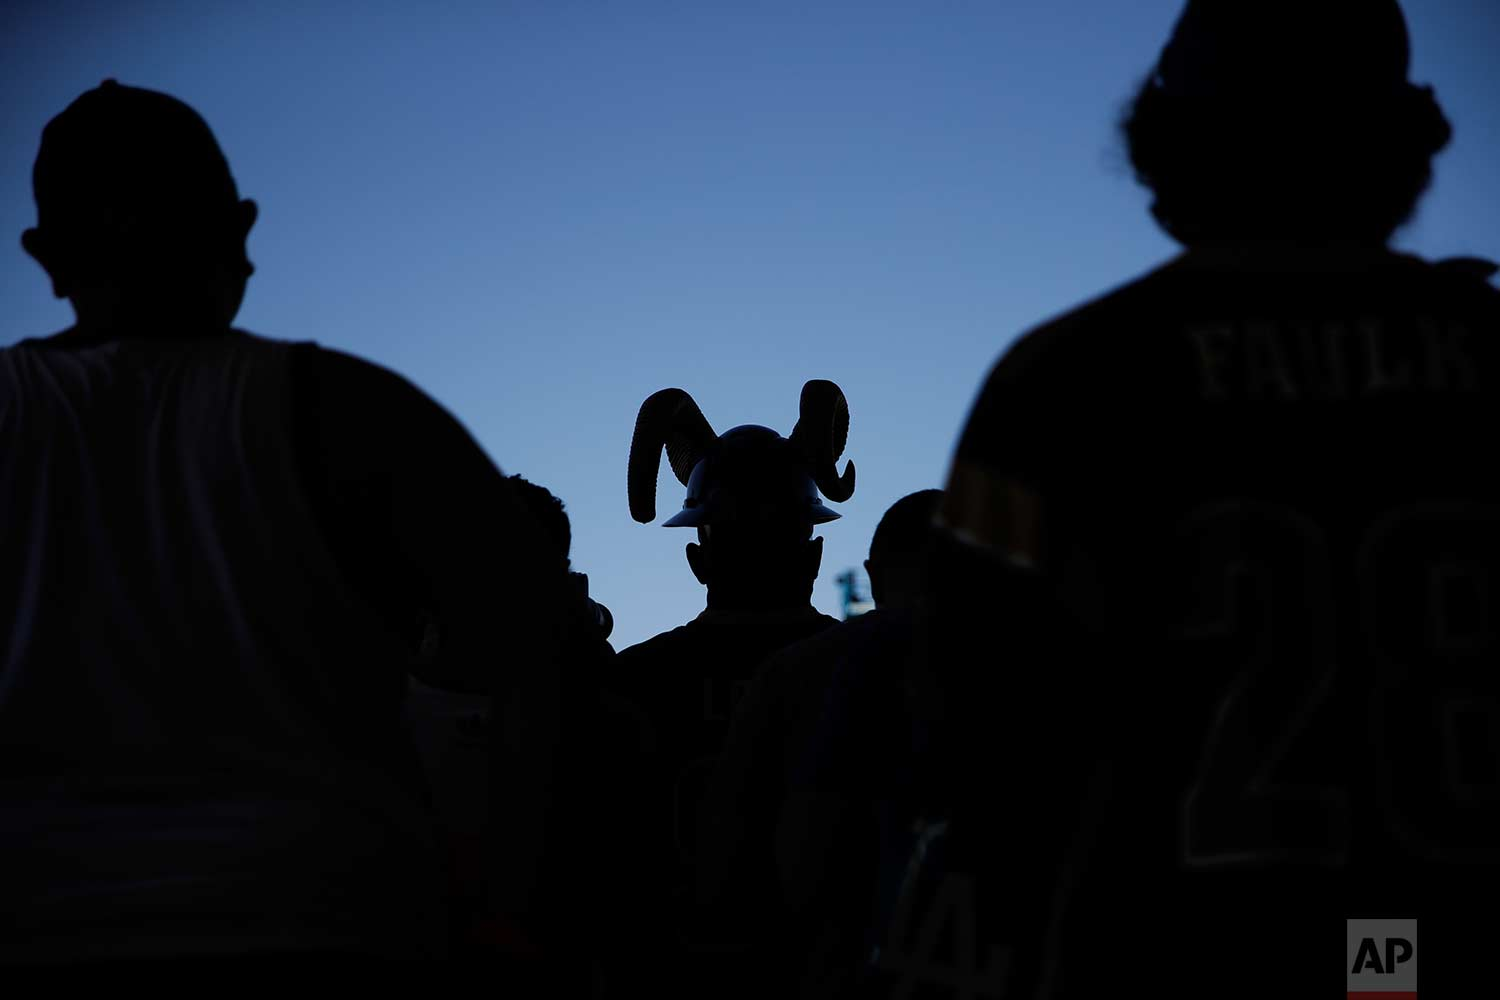 Fans watch the Los Angeles Rams practice at NFL football training camp in Irvine, Calif., on Saturday, July 29, 2017. (AP Photo/Jae C. Hong)